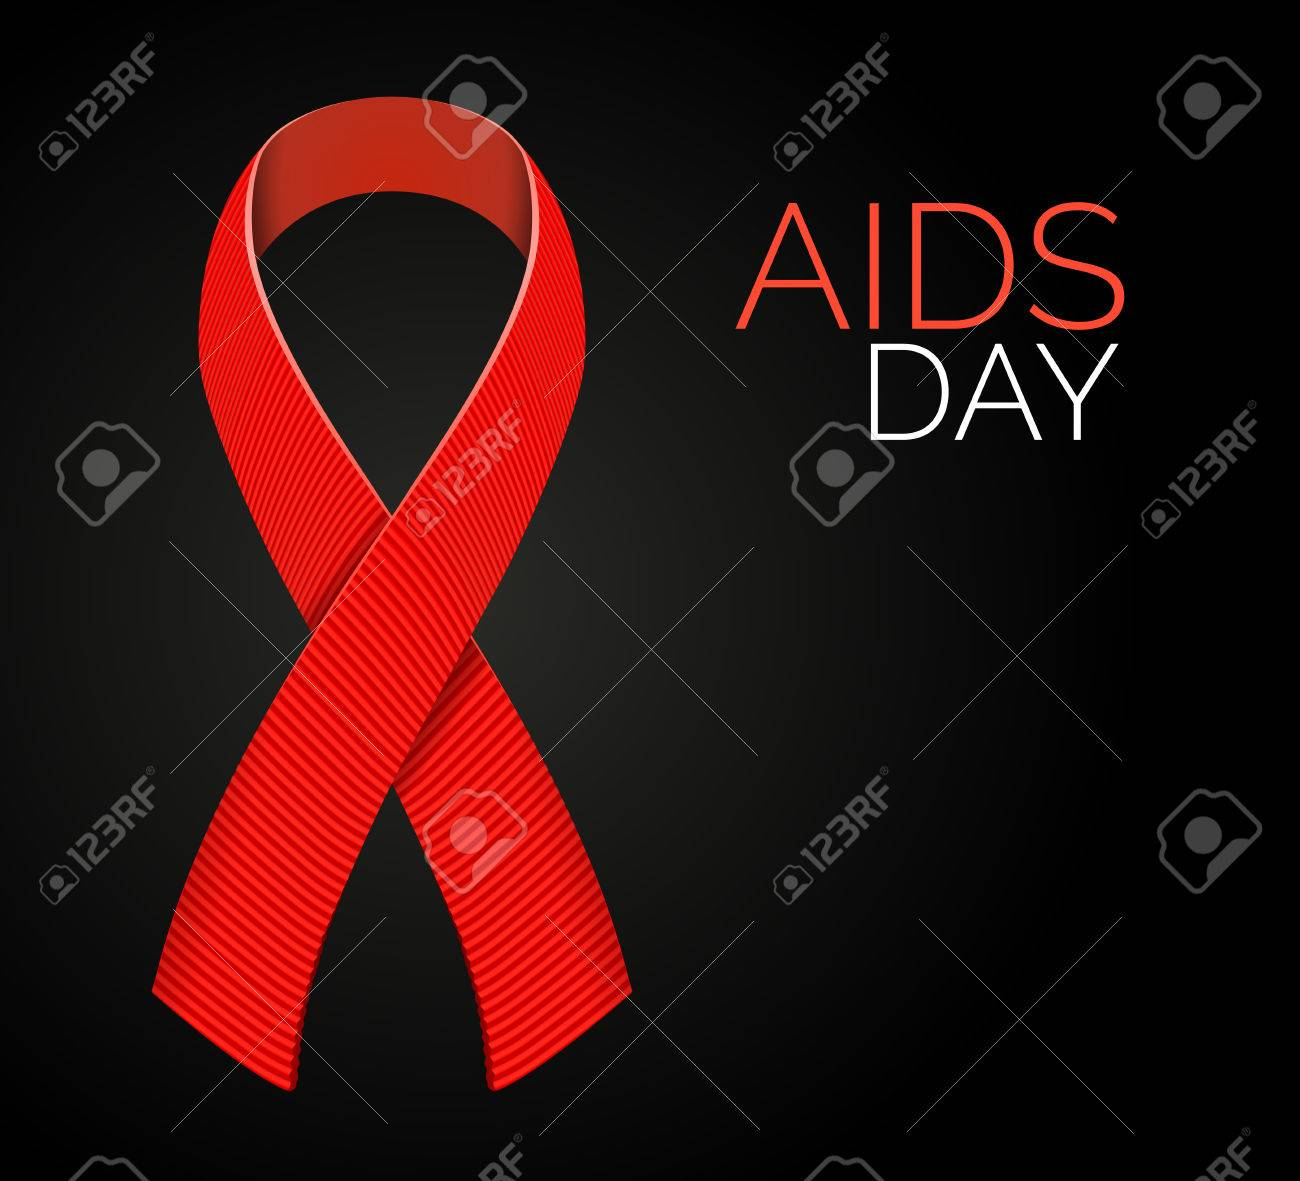 Realistic aids awareness red satin ribbon isolated on black realistic aids awareness red satin ribbon isolated on black background illustration of symbol for solidarity buycottarizona Image collections